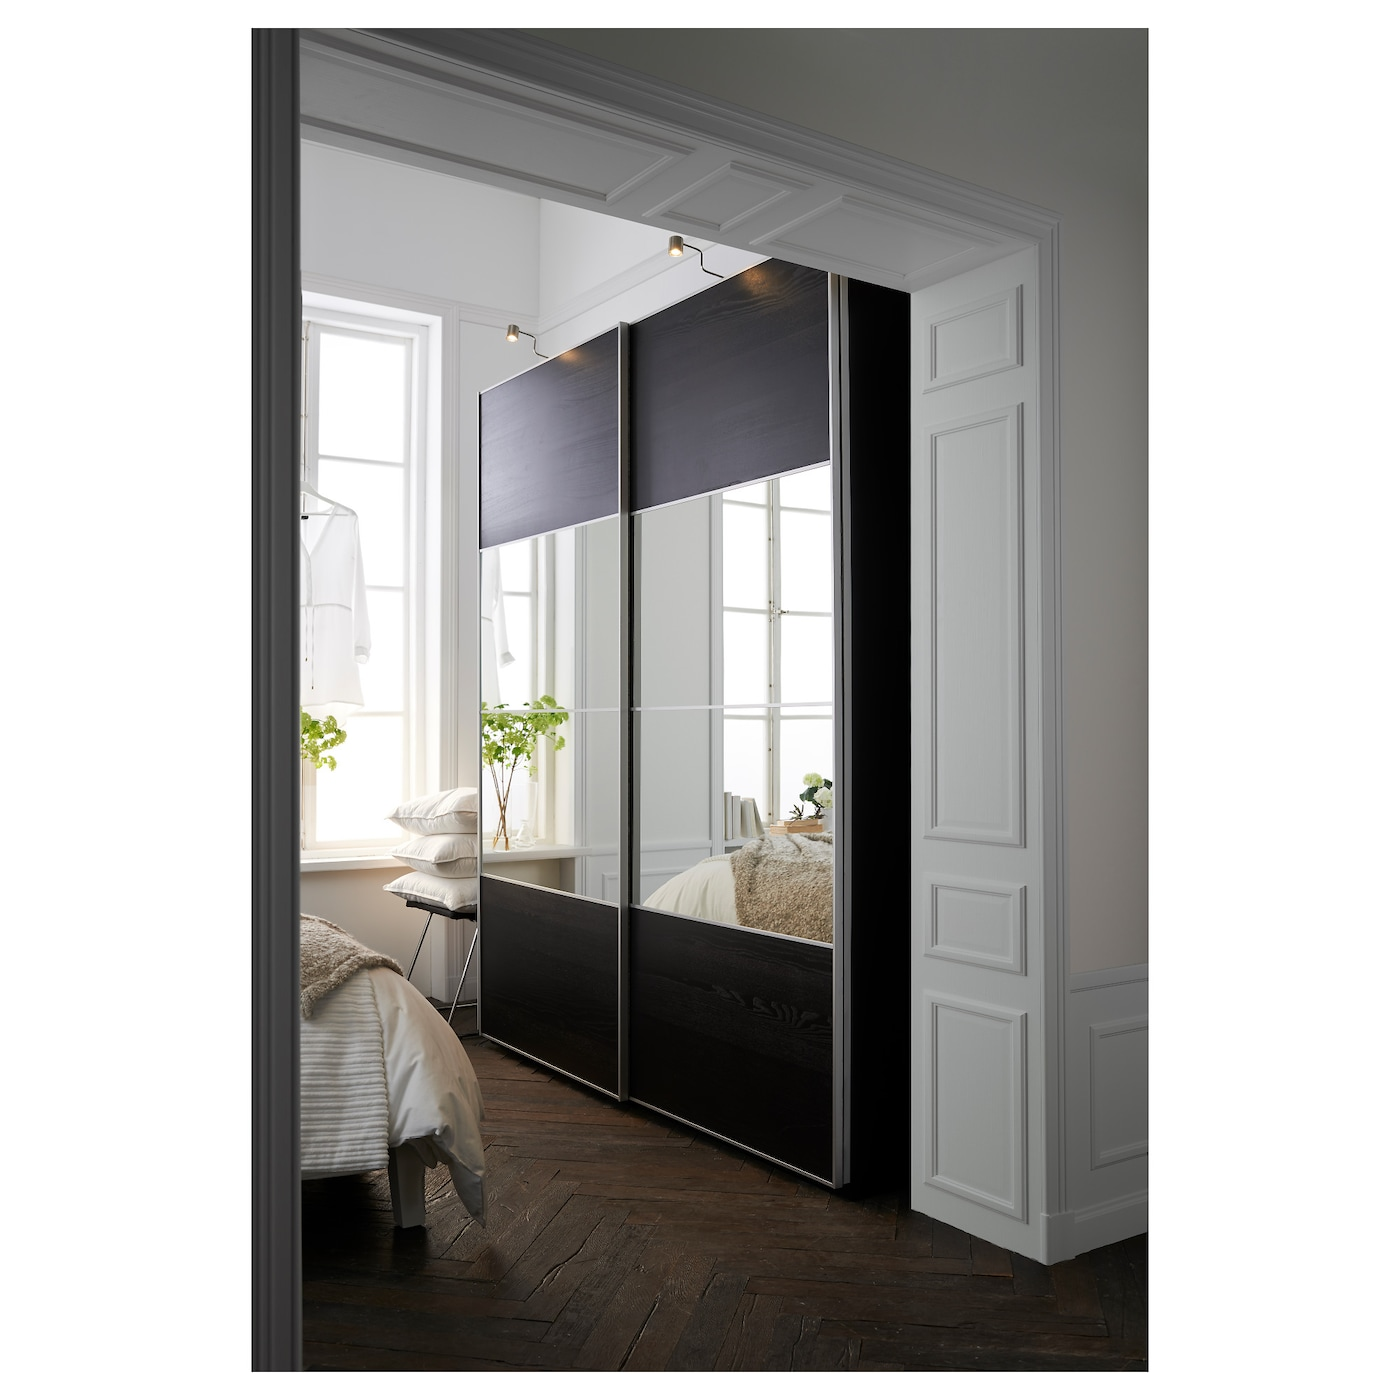 meuble cuisine porte coulissante ikea maison design. Black Bedroom Furniture Sets. Home Design Ideas